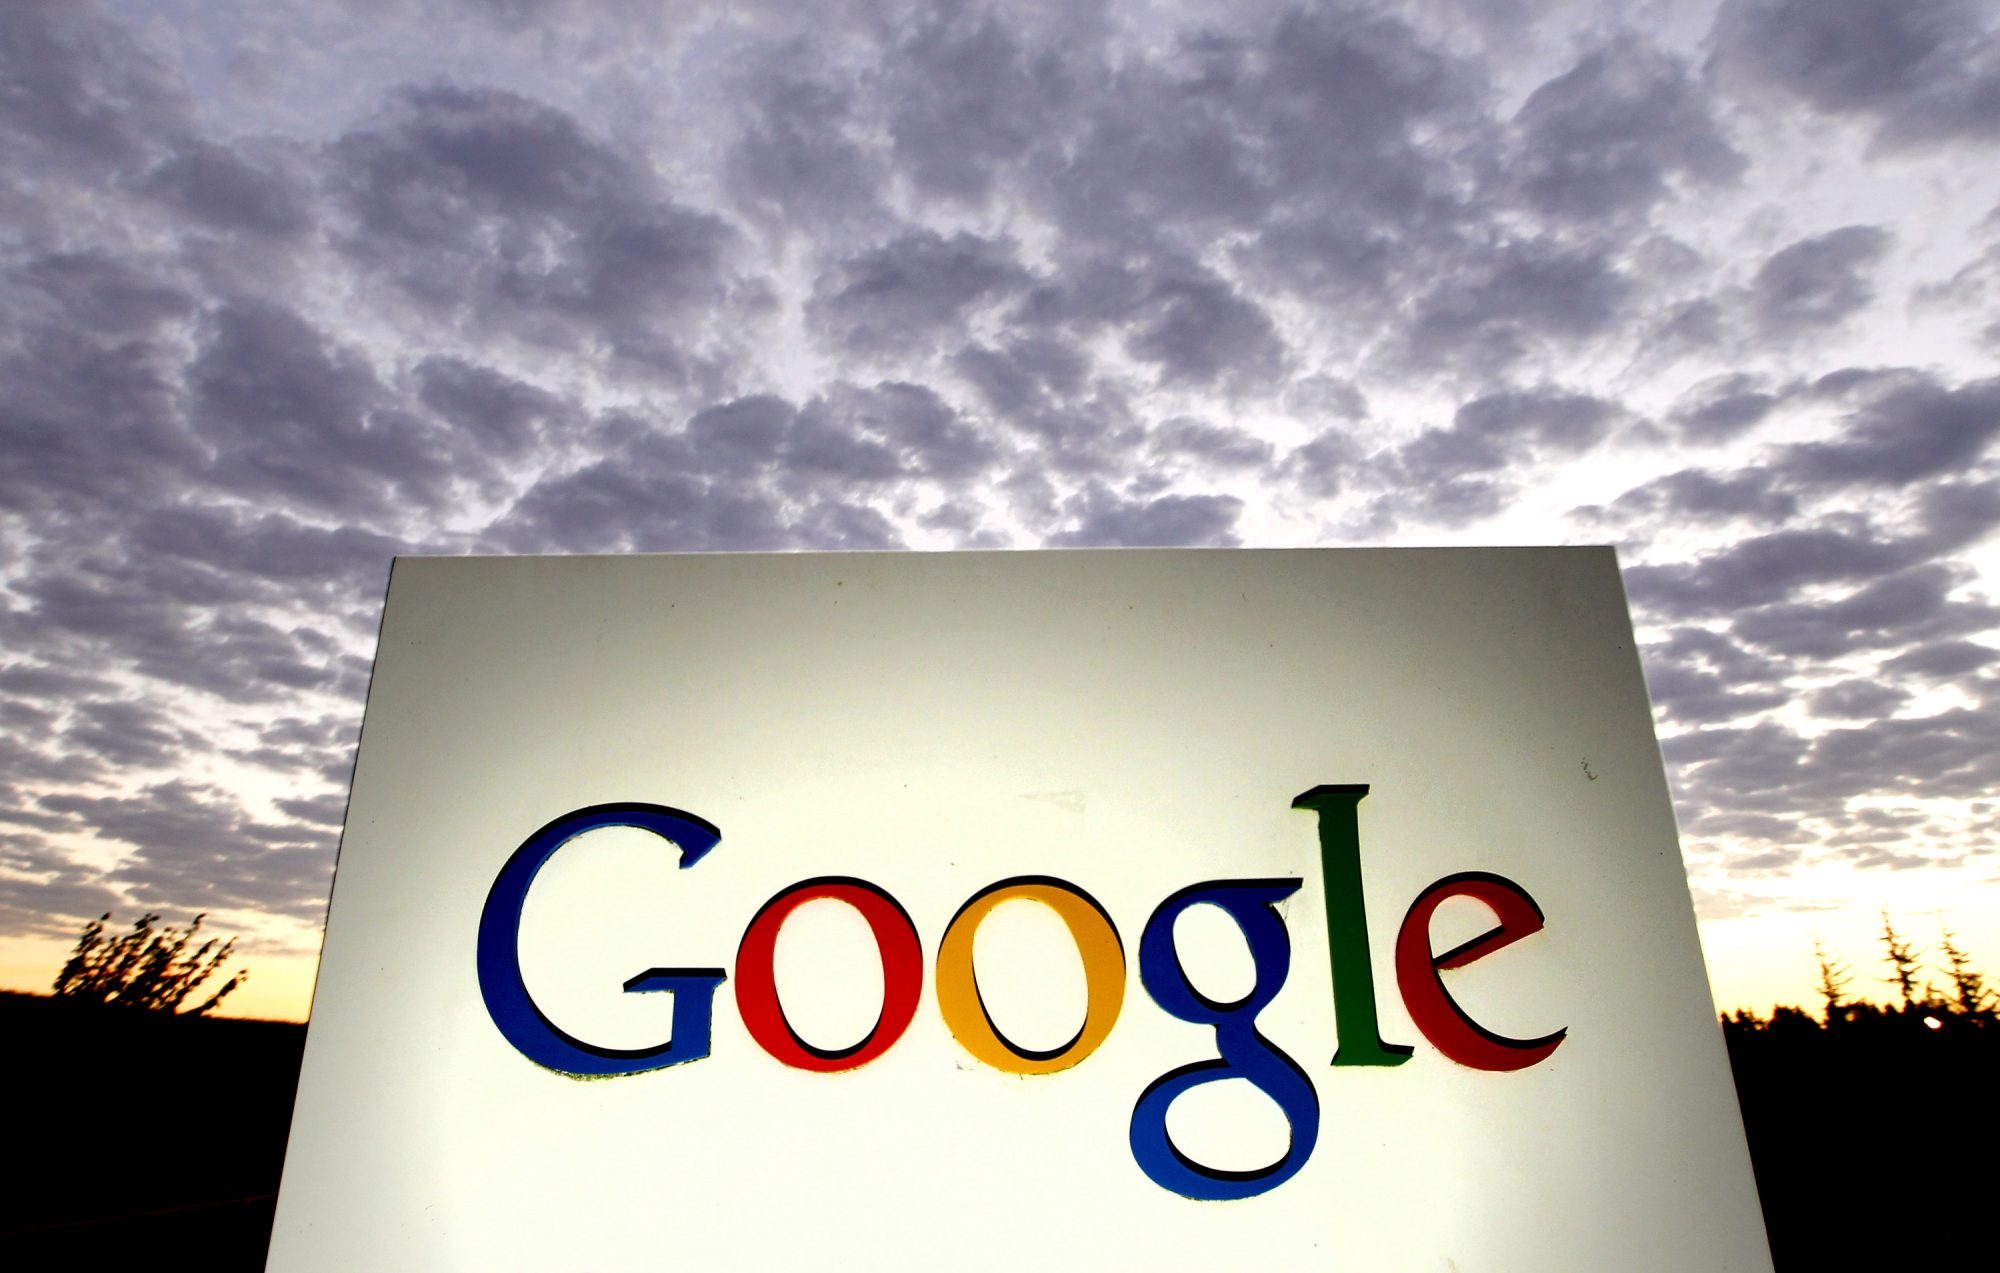 Signage is displayed outside the Google Inc. headquarters in Mountain View, California, on Oct. 13, 2010.